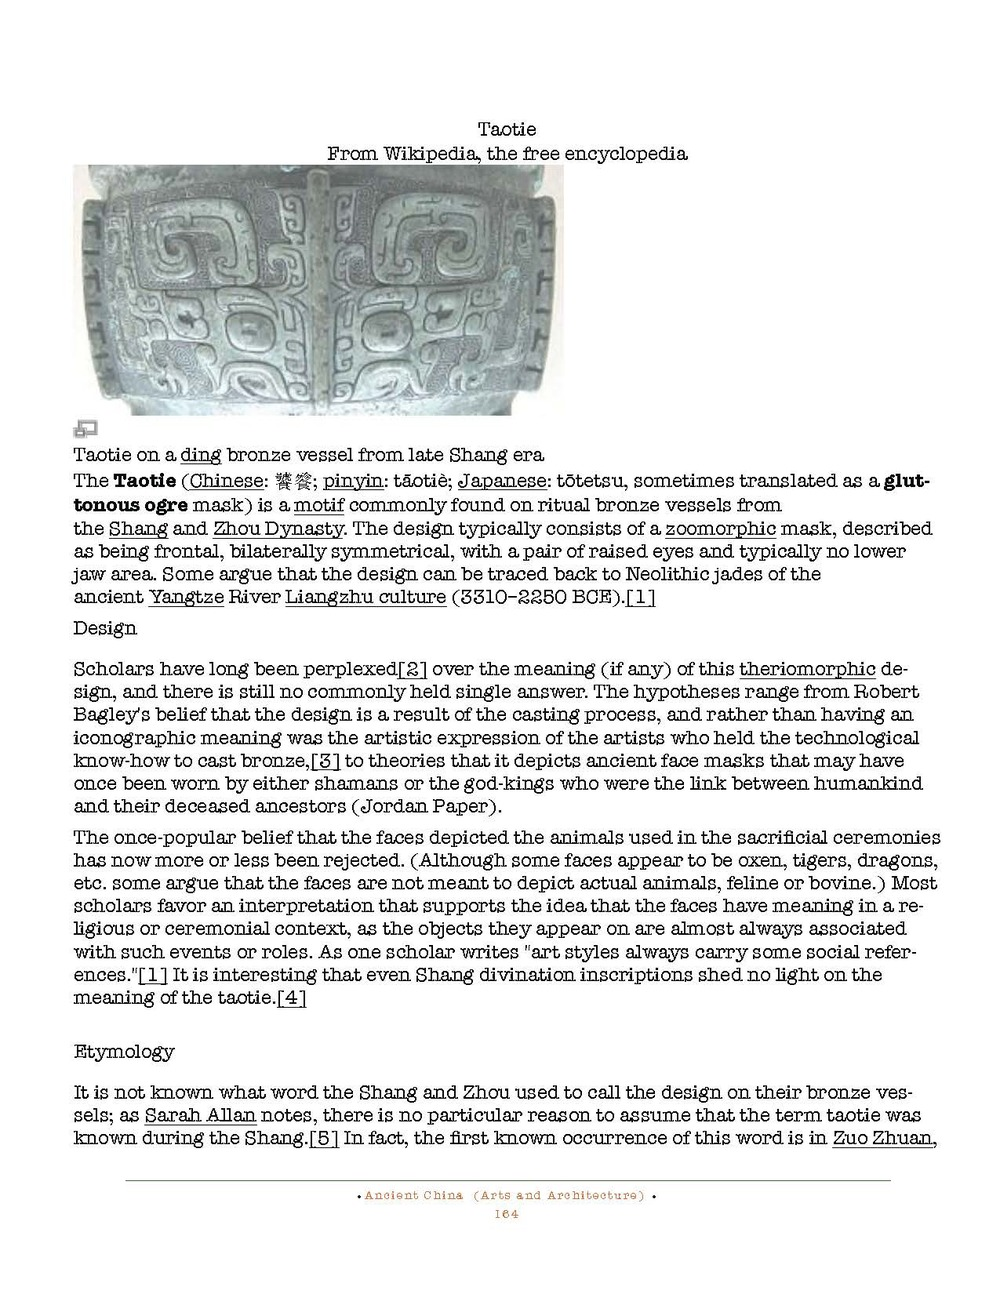 HOCE- Ancient China Notes_Page_164.jpg